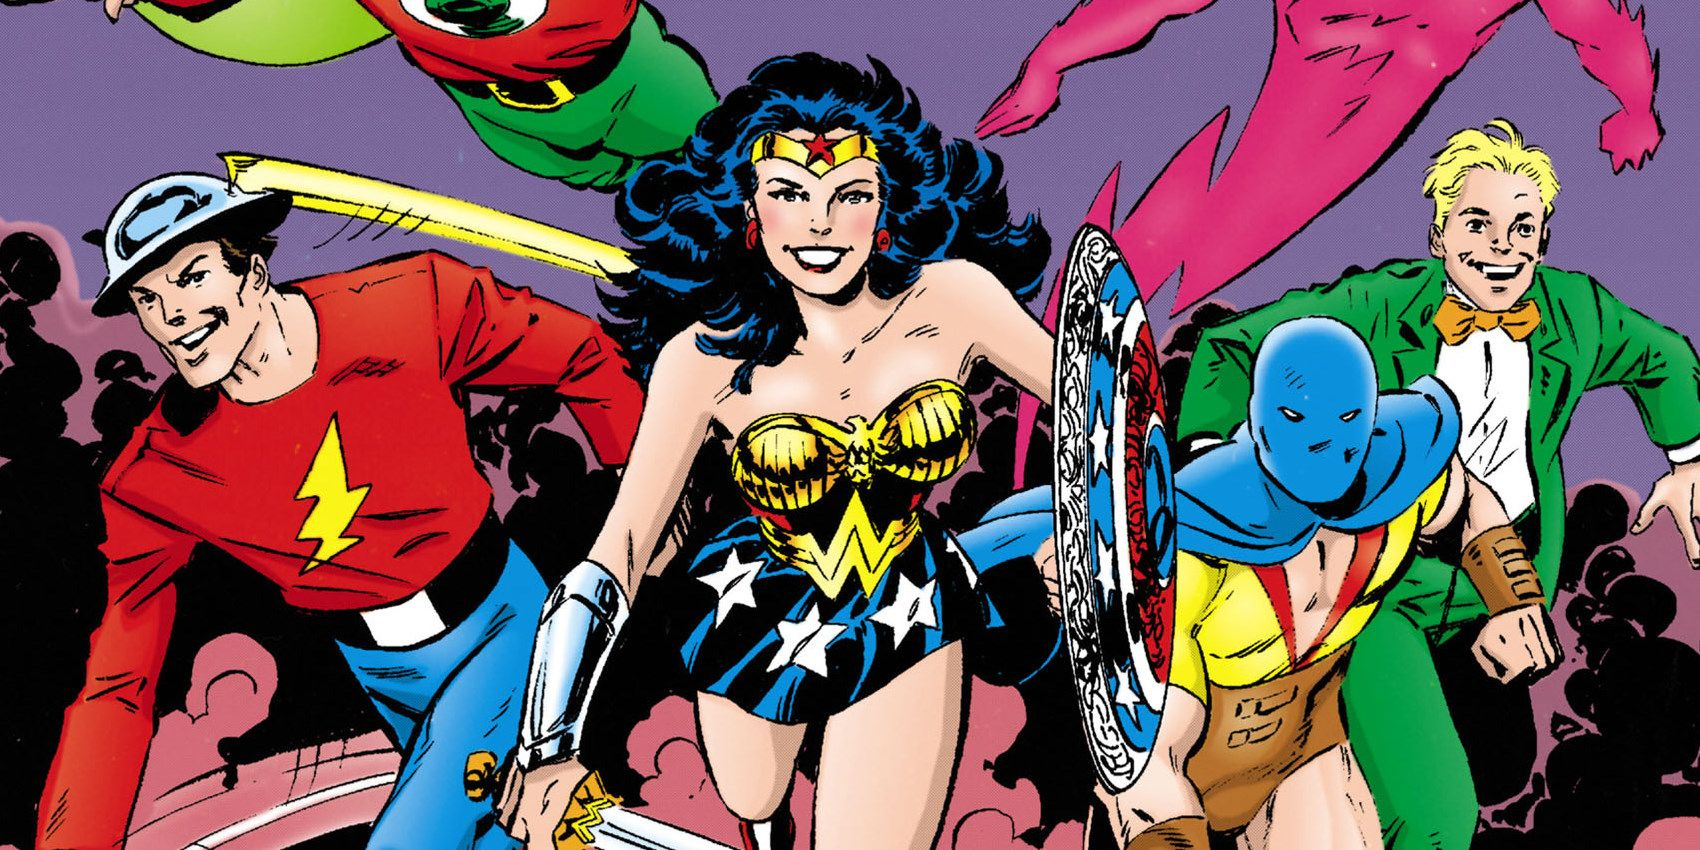 Why The Original Justice League Made Wonder Woman Their Secretary